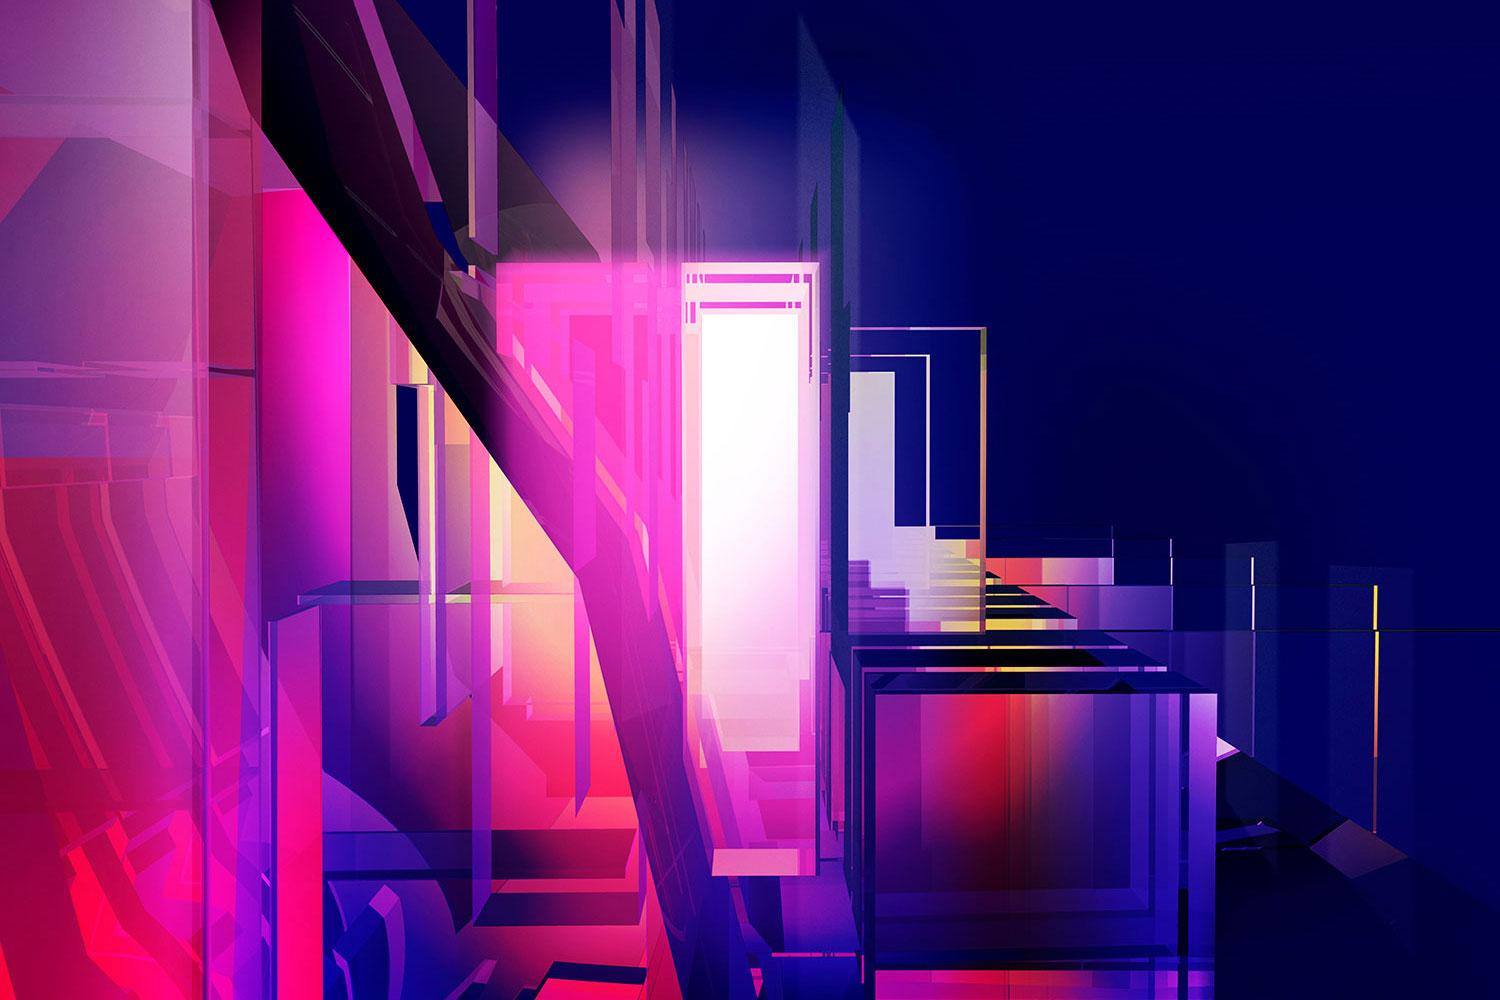 Abstract pink to blue rectangles